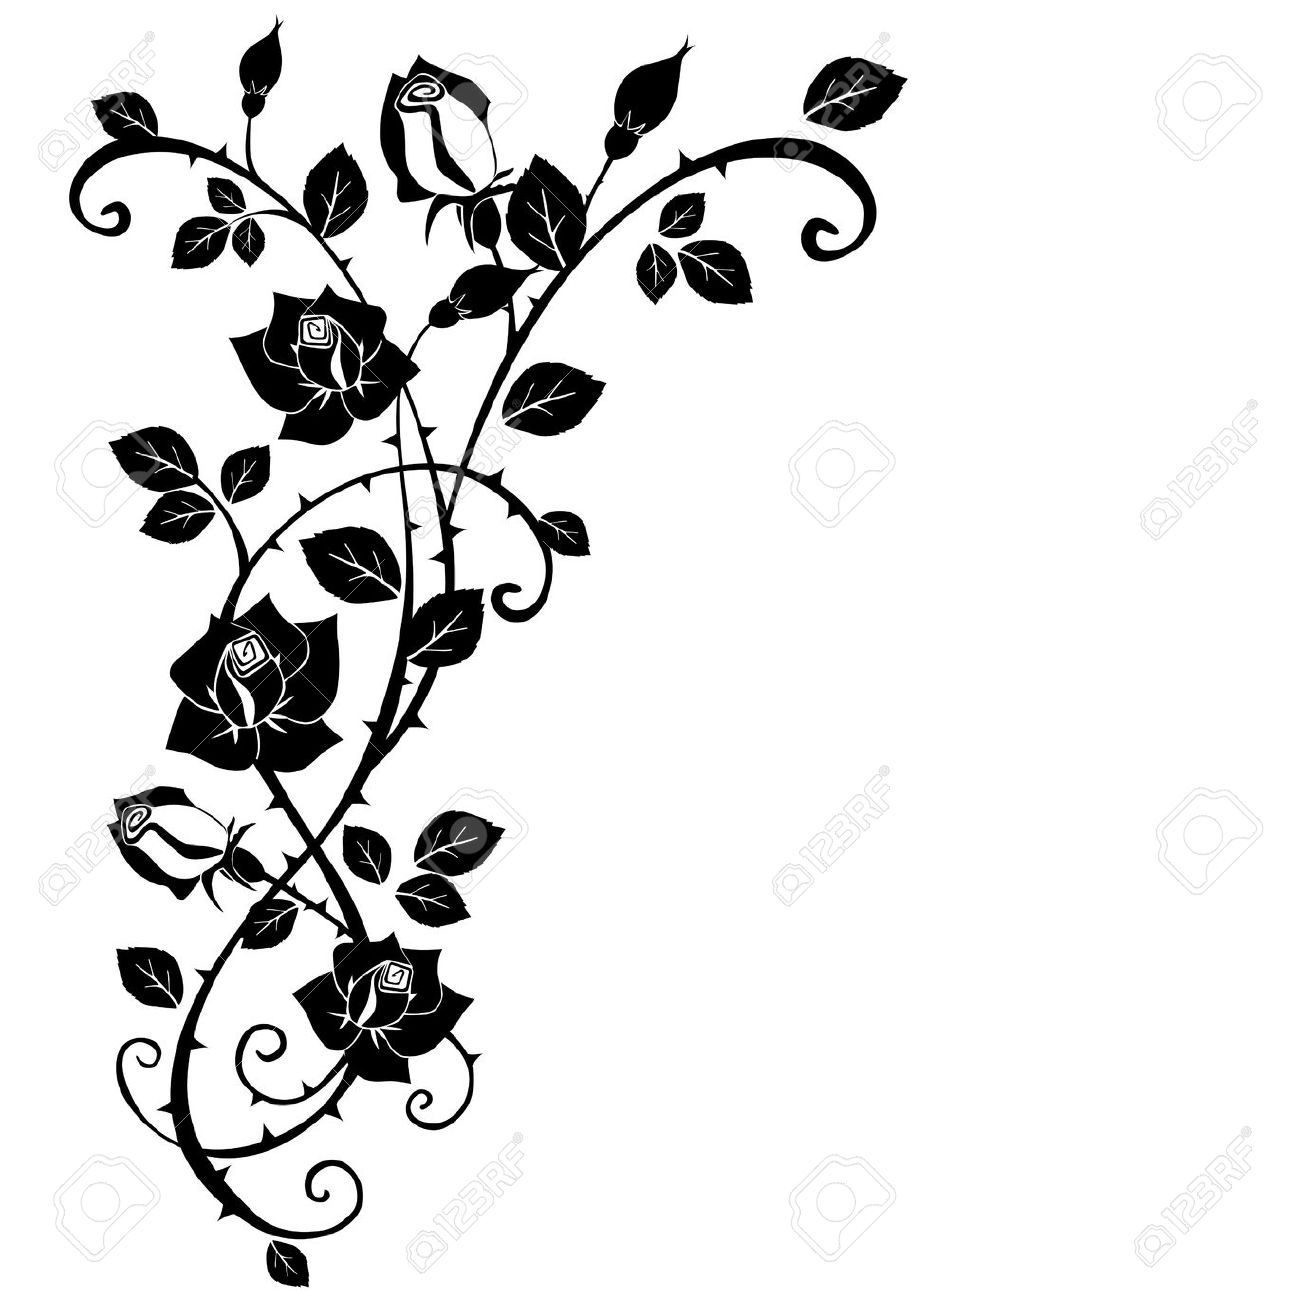 de1ddd422d2fd ... Royalty Free Thorn Clipart. roses branch vine tattoo vector - Sök på  Google